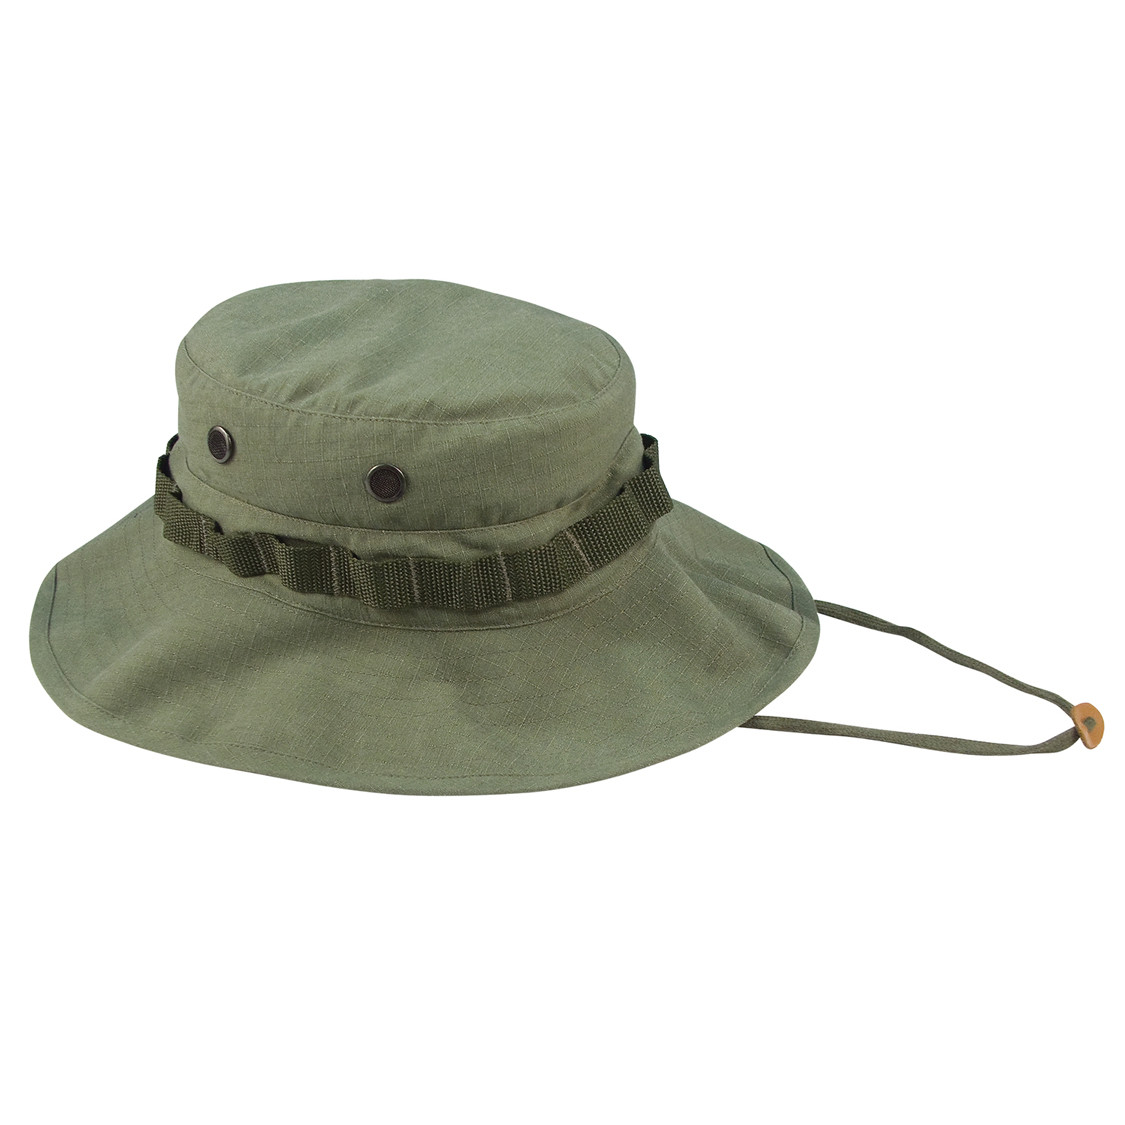 7c7d32cc6336a Shop Vintage Vietnam Era Boonie Hat - Fatigues Army Navy